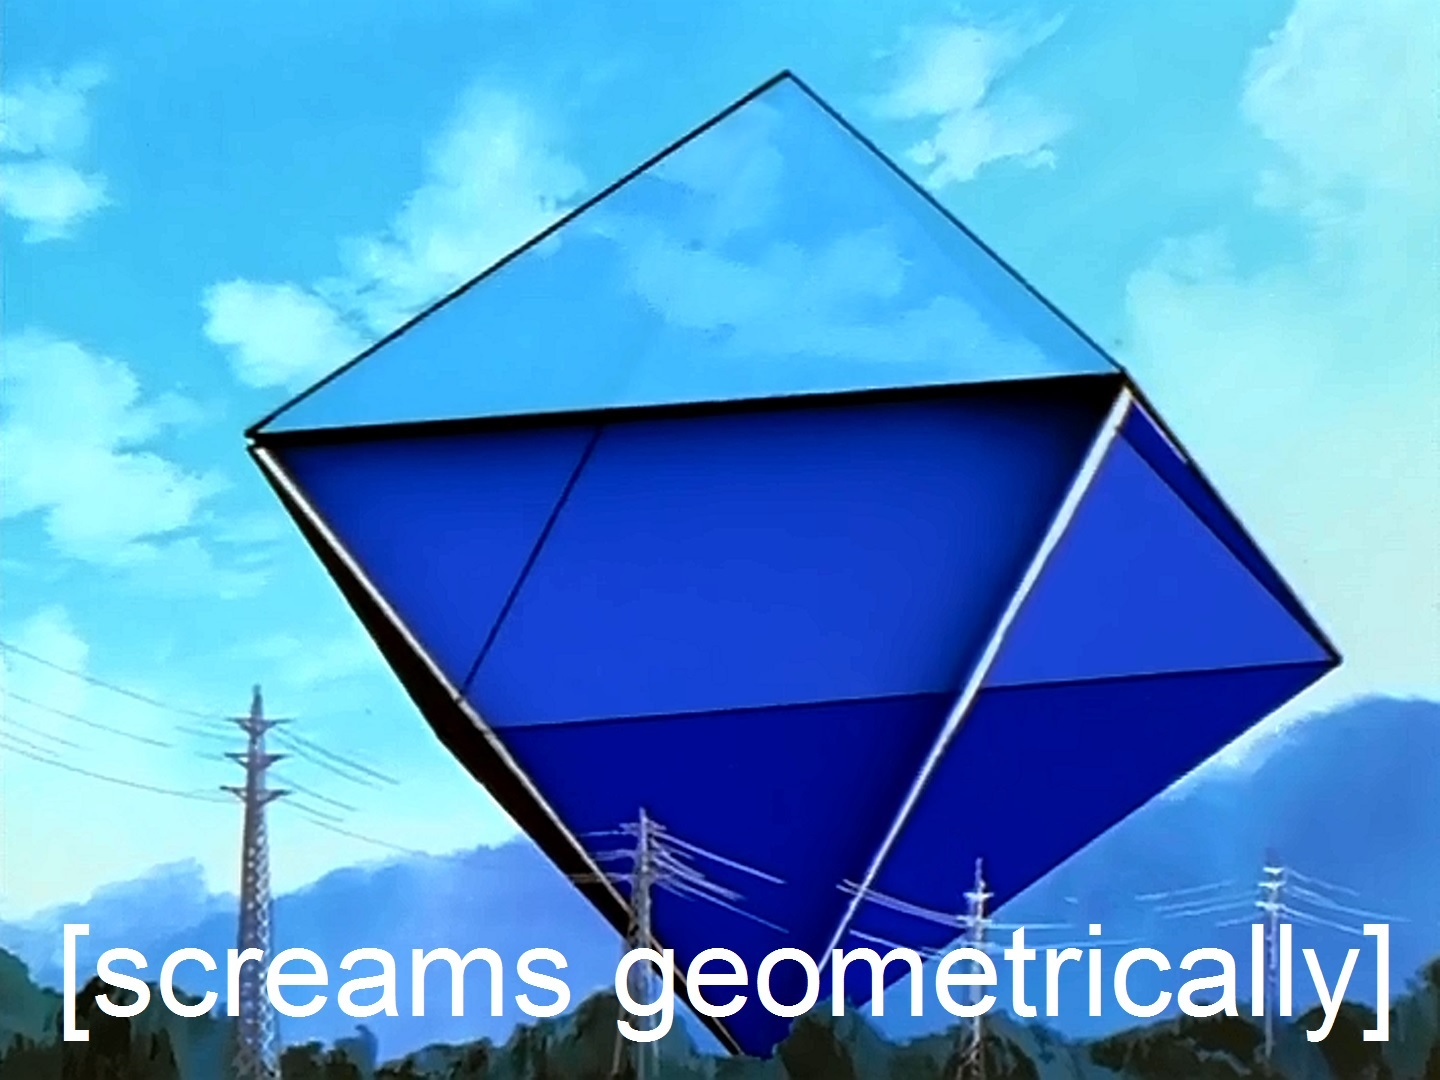 [screams geometrically]